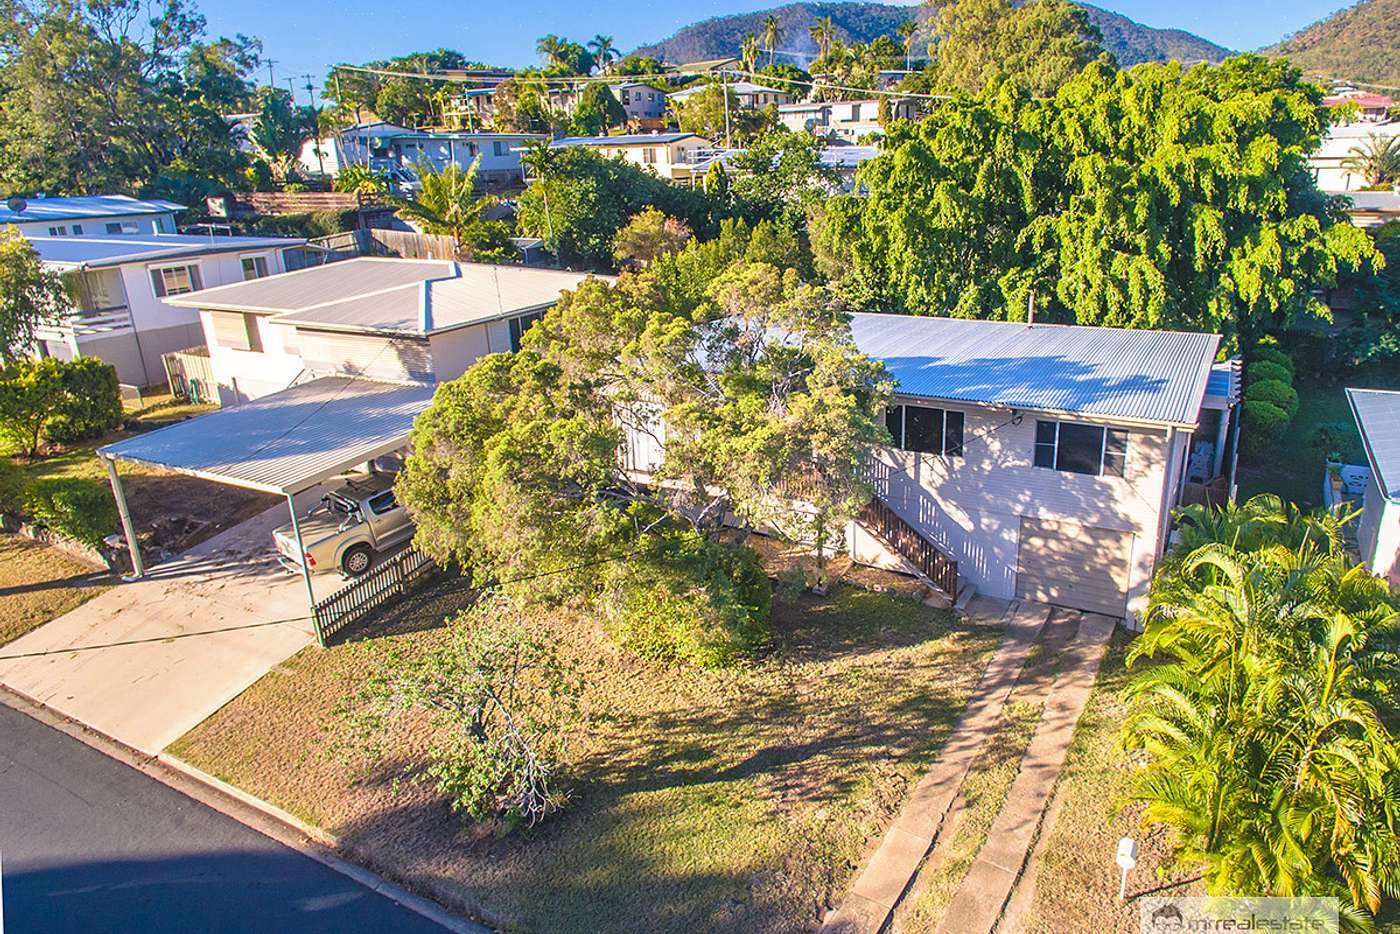 Main view of Homely house listing, 314 Mills Avenue, Frenchville QLD 4701